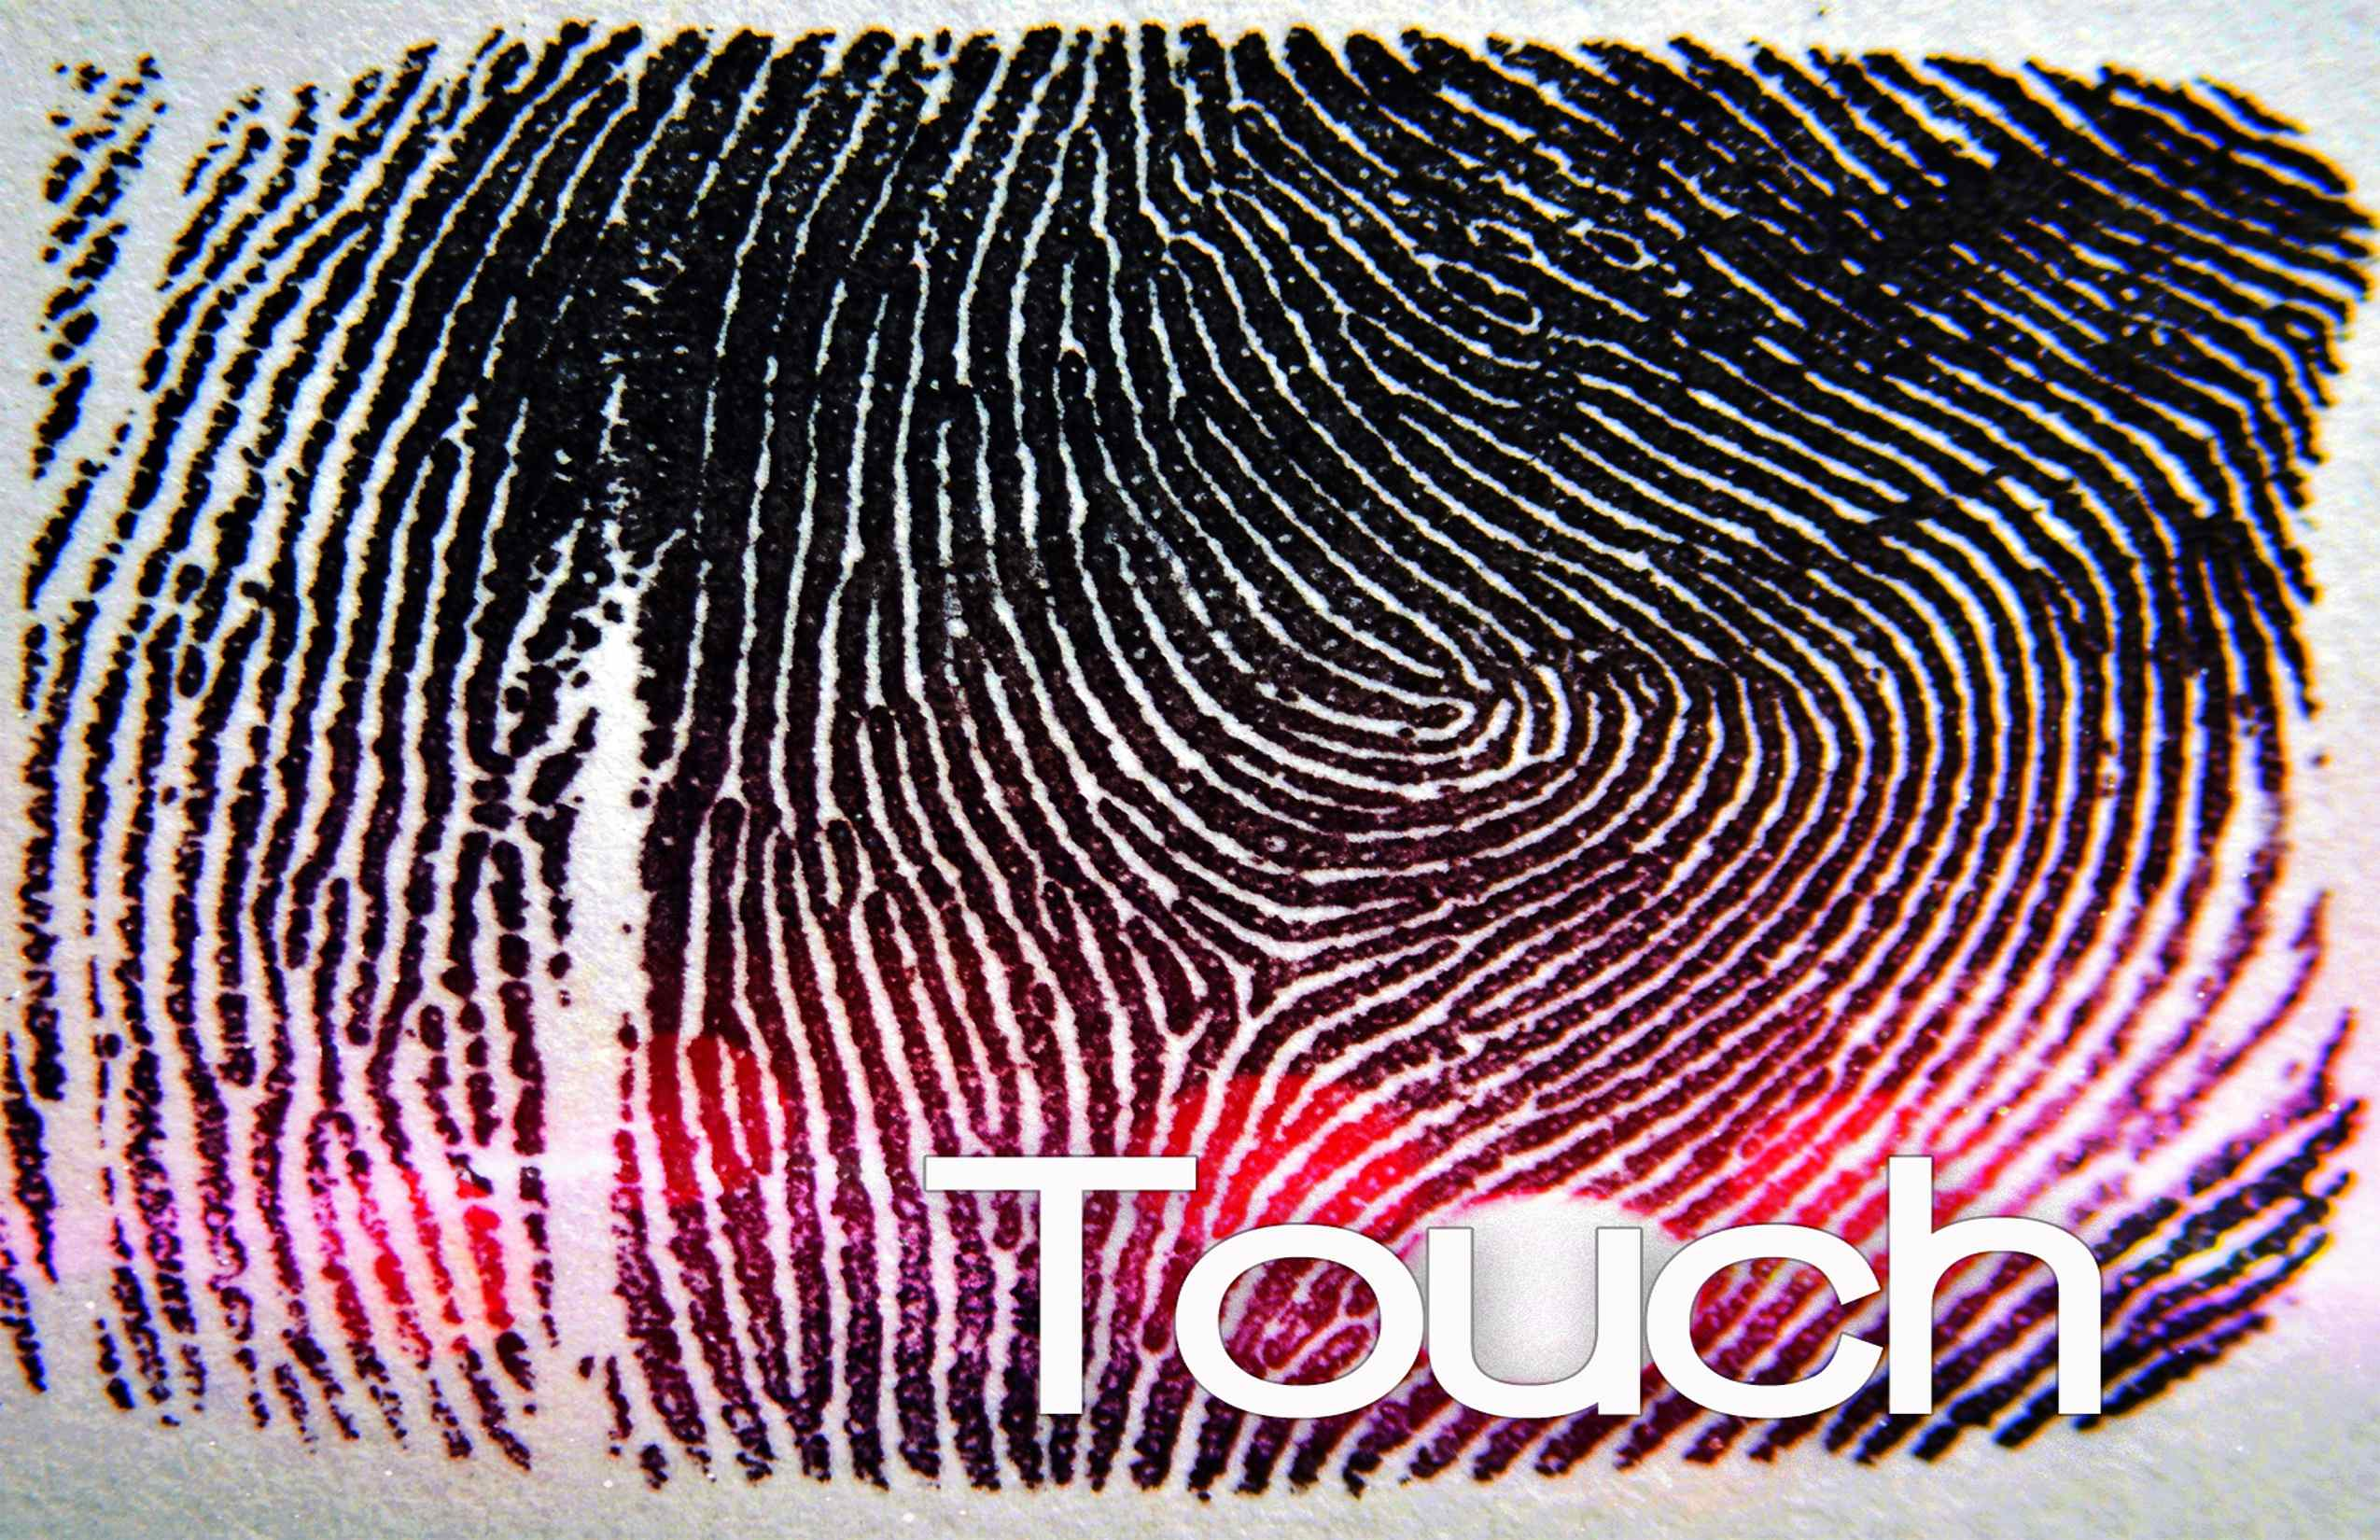 Touch 4x3 - Message series